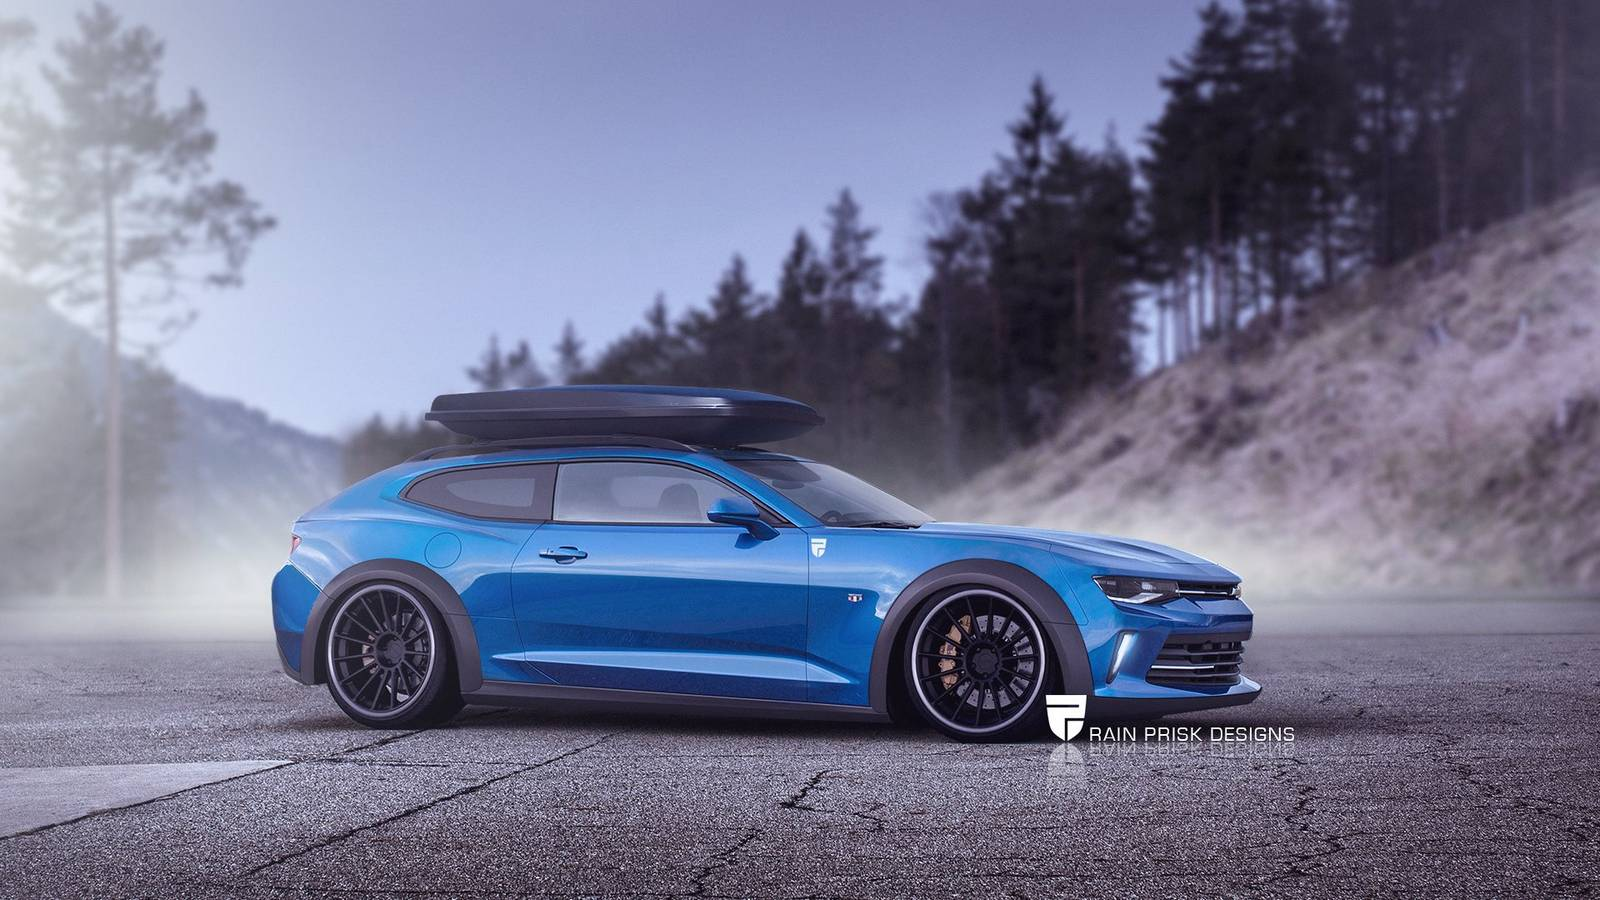 7 Crazy Station Wagon Renders Based on Sports Cars - GTspirit